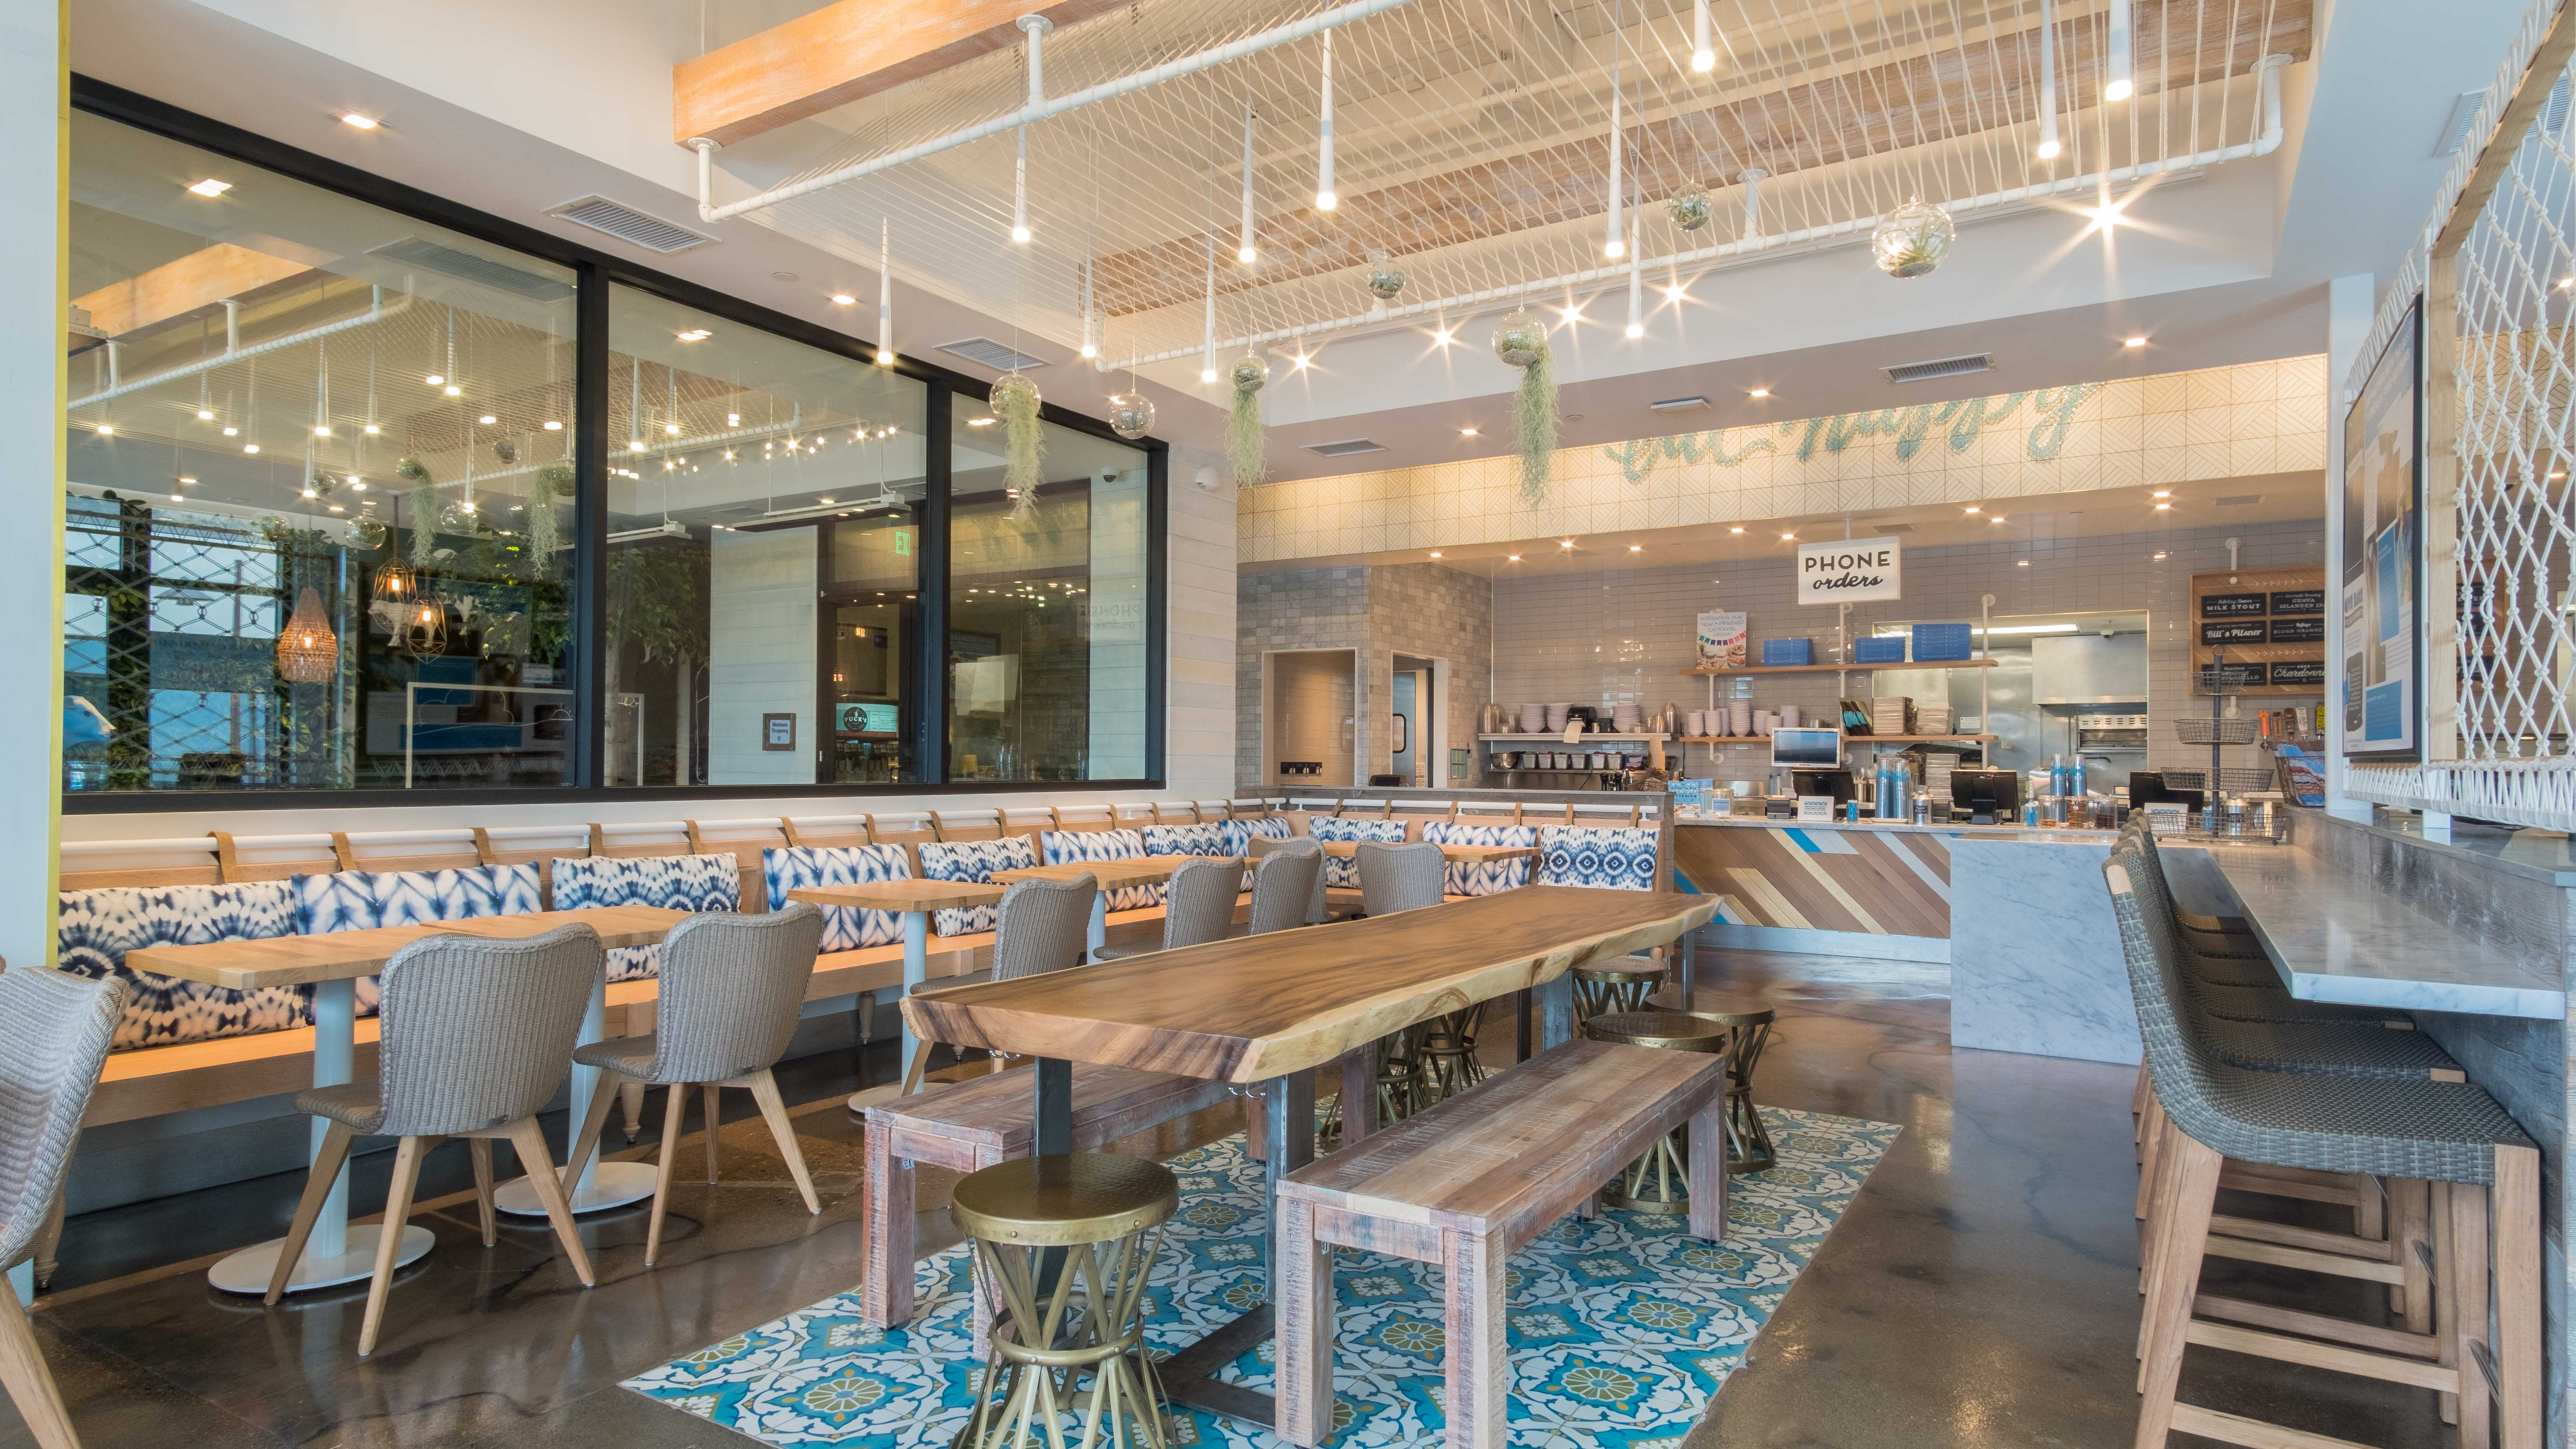 Gourmet Sandwiches And Salads From Mendocino Farms Arrive